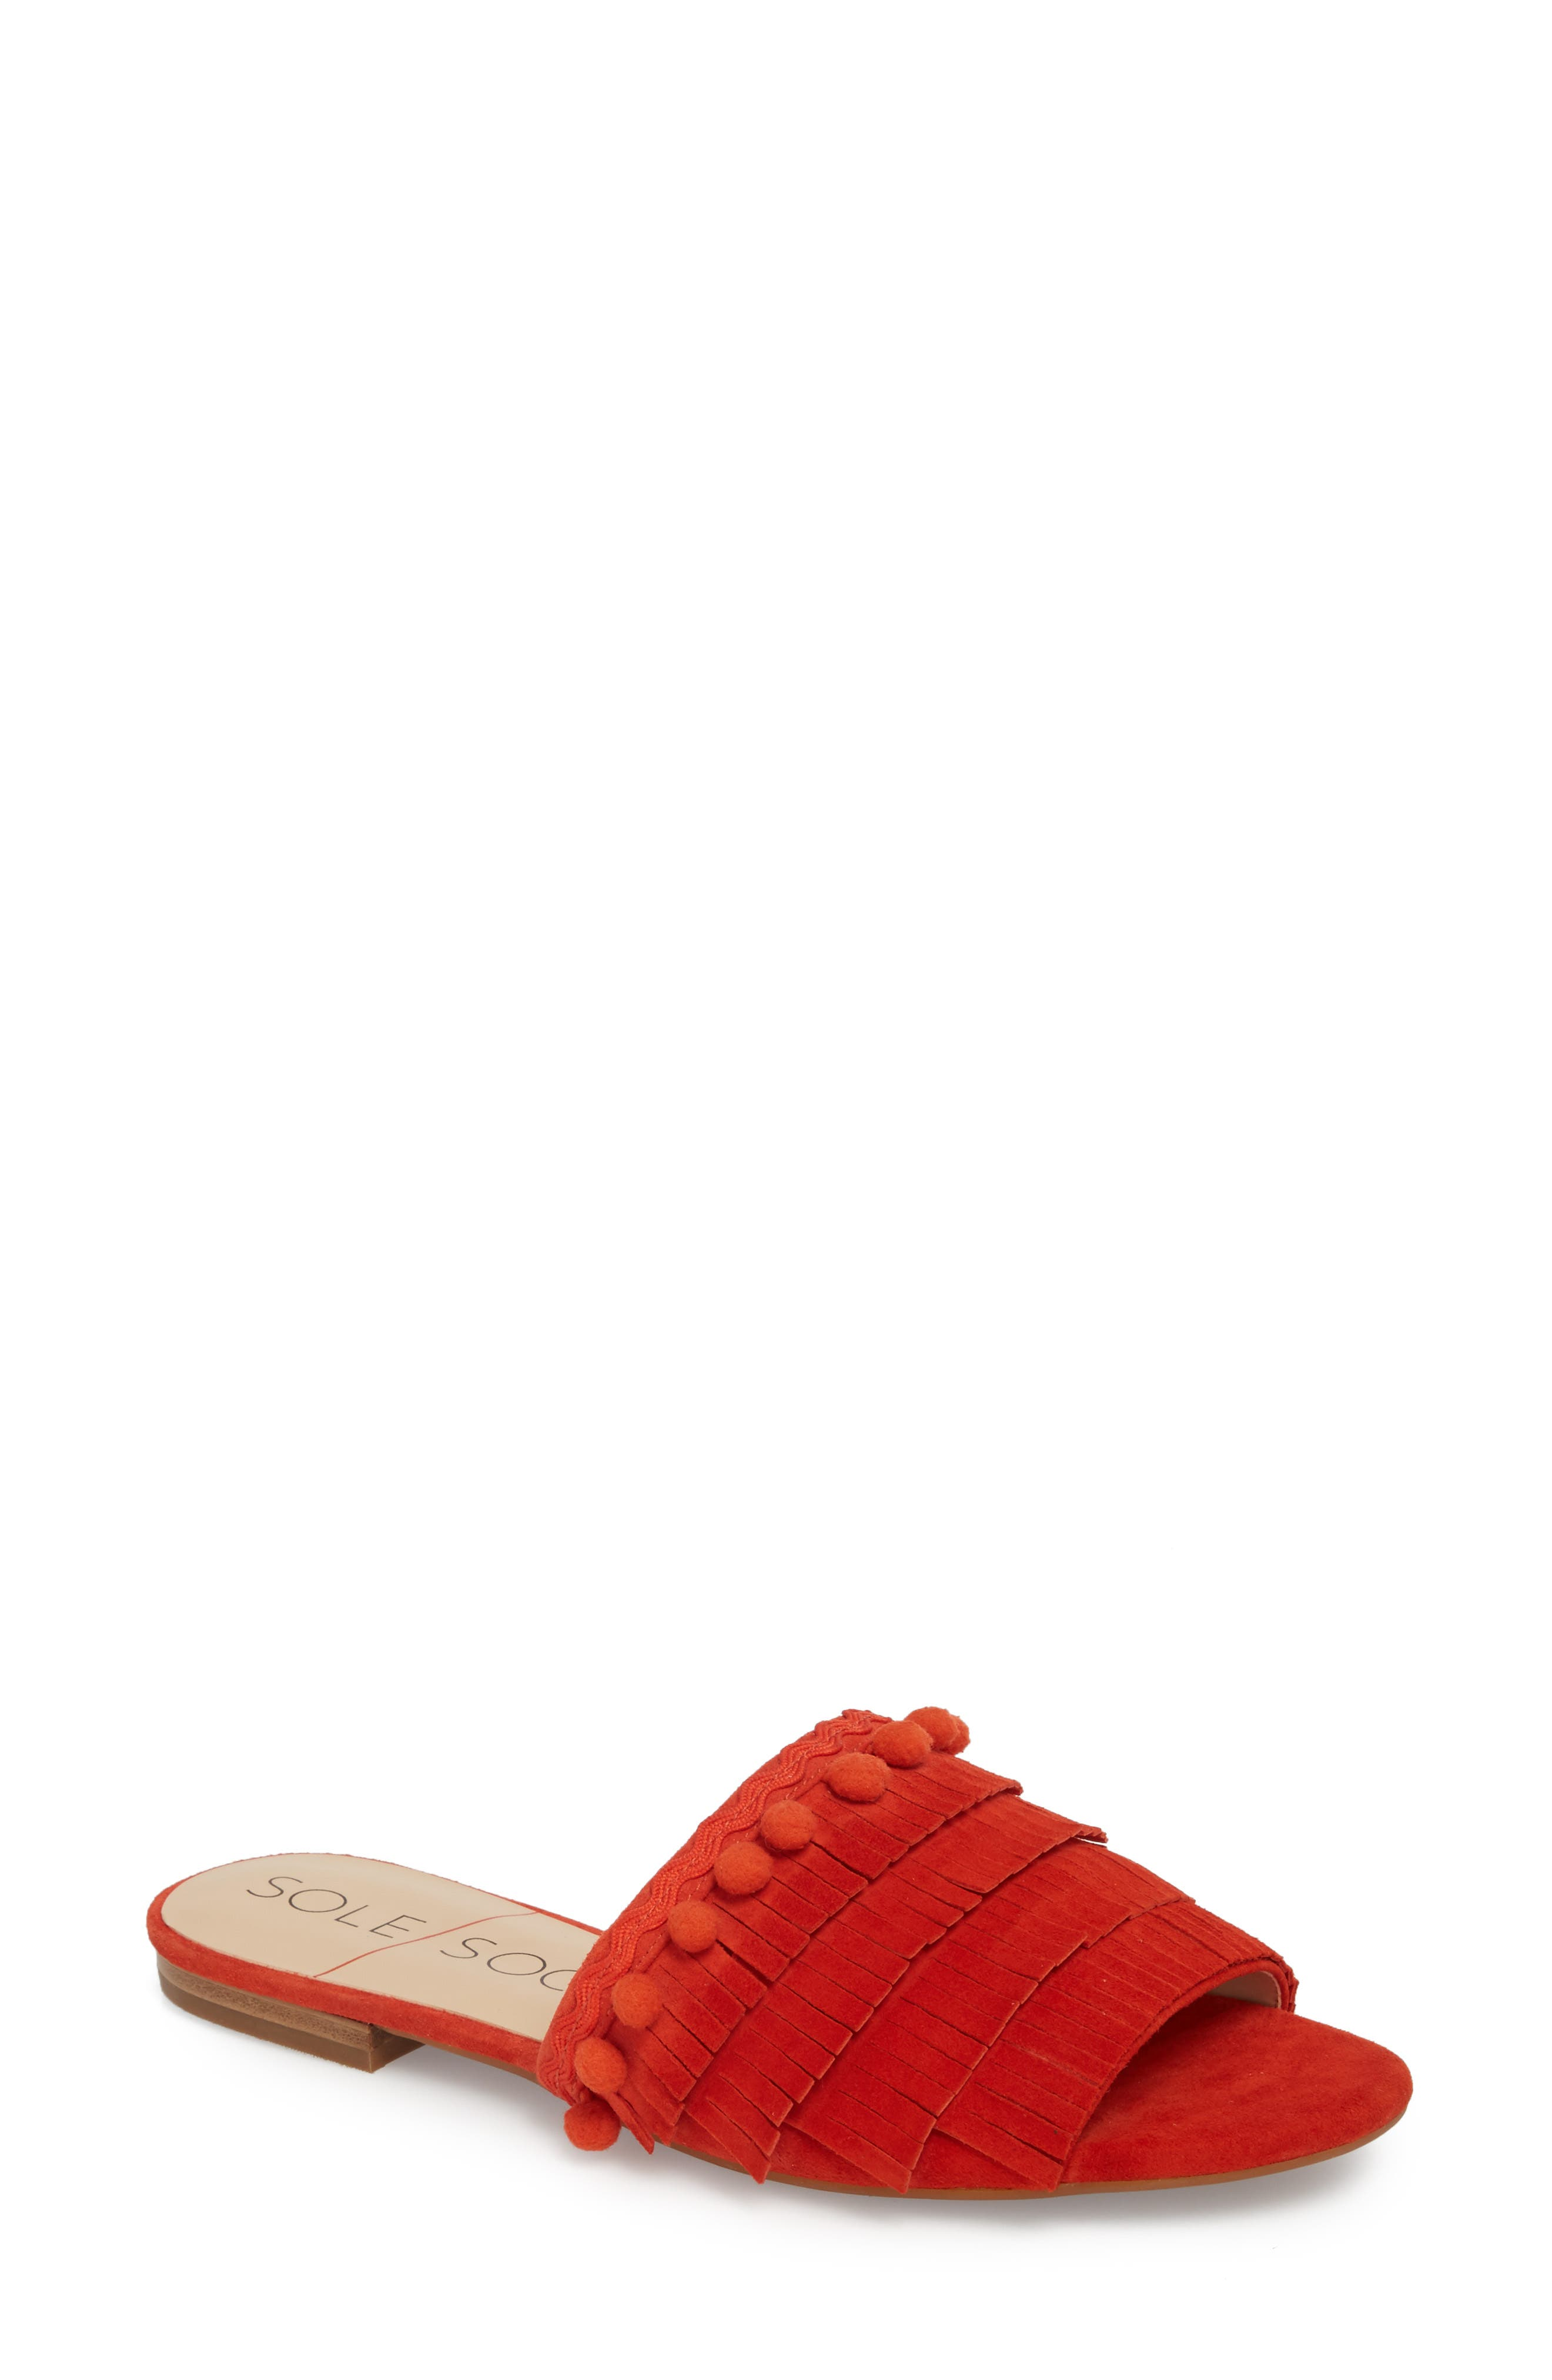 Malina Mule,                             Main thumbnail 1, color,                             Bright Coral Suede